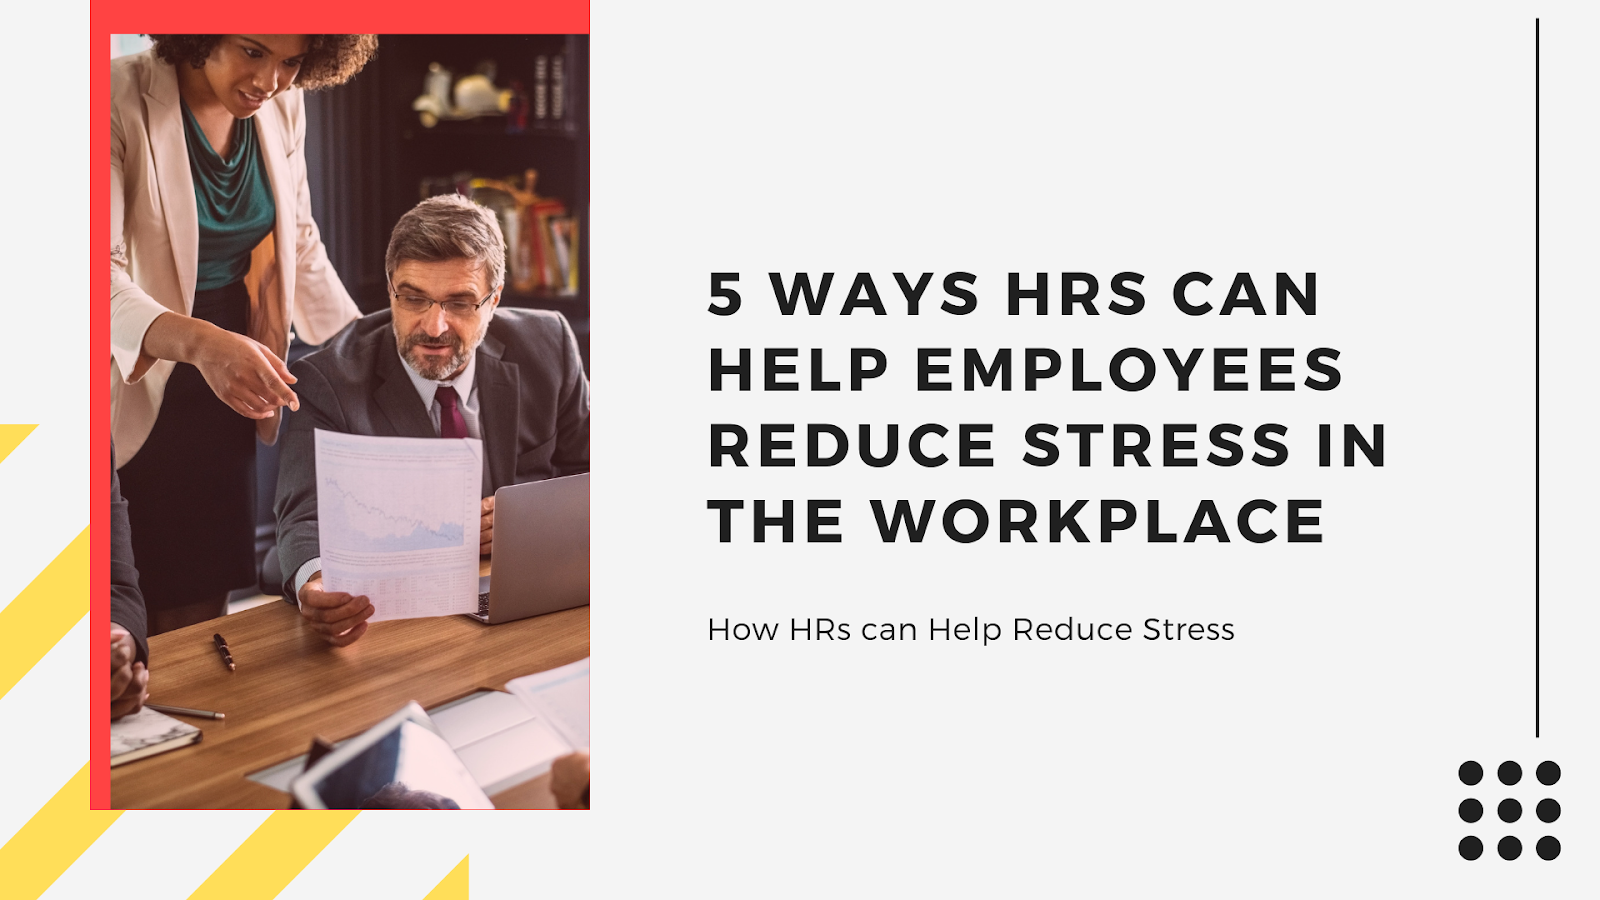 5 Ways HRs can Help Employees Reduce Stress in the Workplace